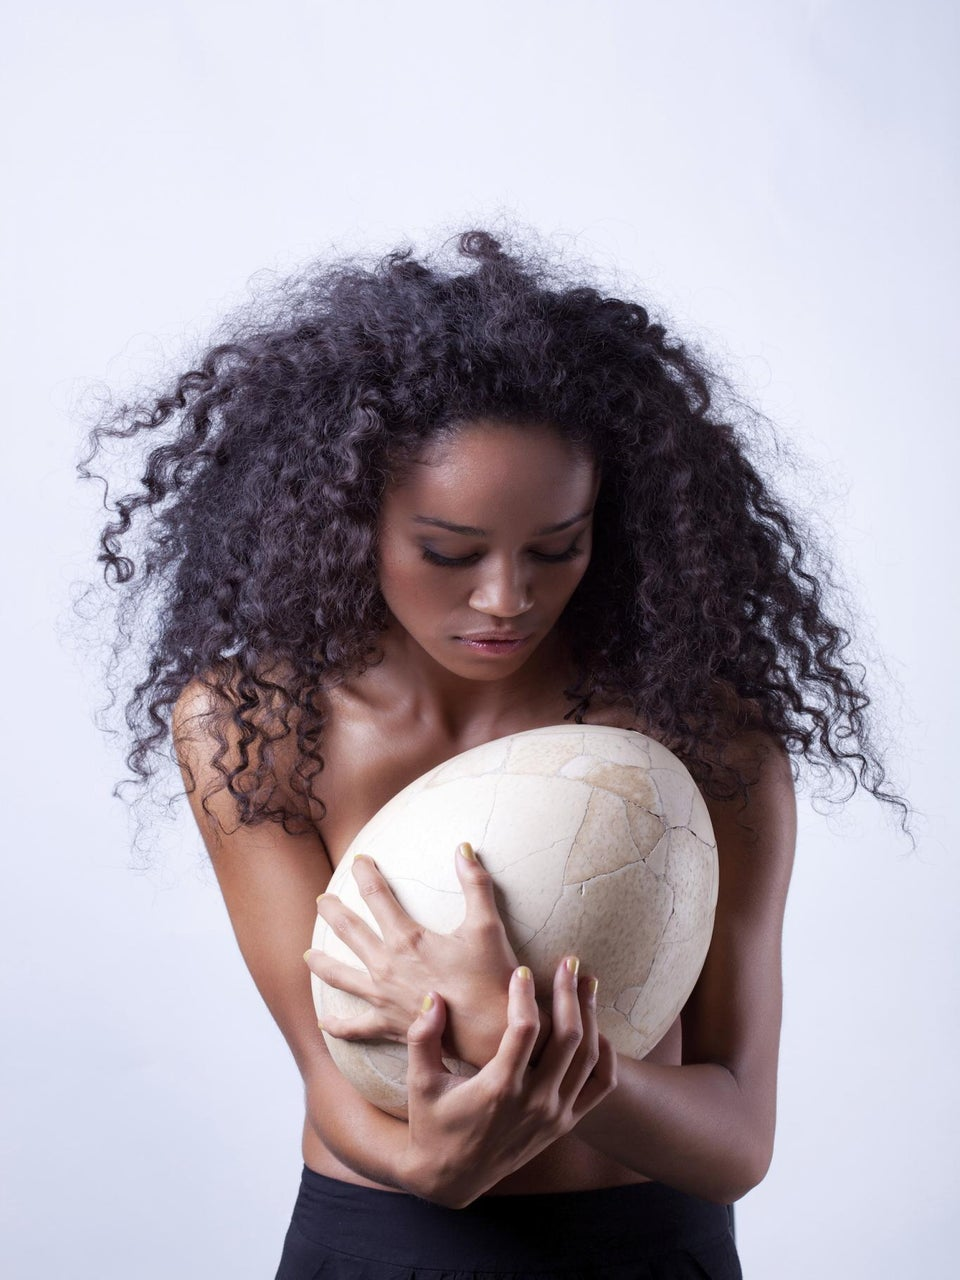 Which Is Better For Your Hair? Eggs Or Hydrolyzed Protein